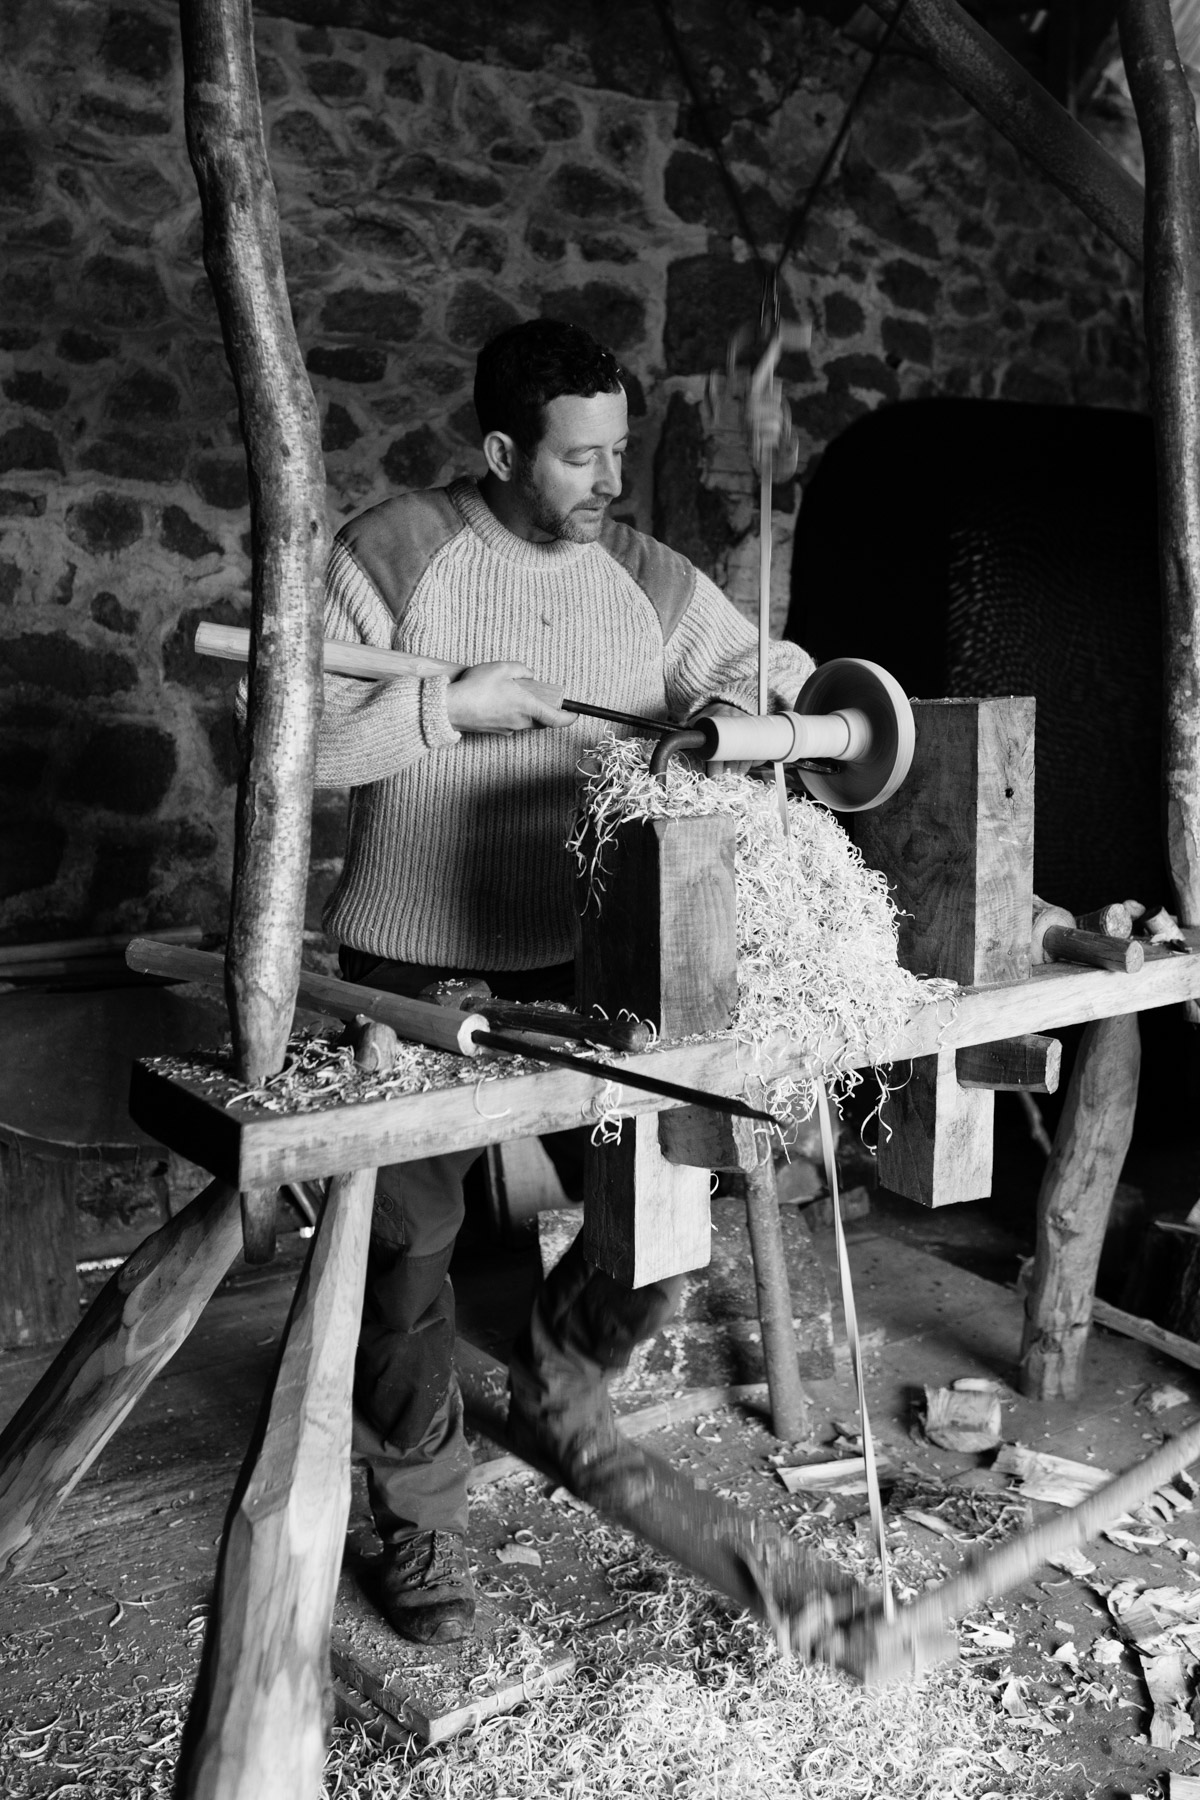 Sharif Adams / Wood Turner / North Bovey - Specialising in ancient woodturning techniques, some of which date from the Iron Age, Sharif uses a traditional pole lathe powered by a treadle to turn bowls, pots, cups, flasks and boxes, sourcing wood from sustainable Dartmoor forests. Sharif works in beautiful stone threshing barn on a working farm near North Bovey. During Sharif's demonstration, you will see him practise this age-old skill to craft a wooden bowl. Using a pole lathe requires a moderate amount of physical energy but it is great fun and can be a real challenge. No previous woodturning experience is required